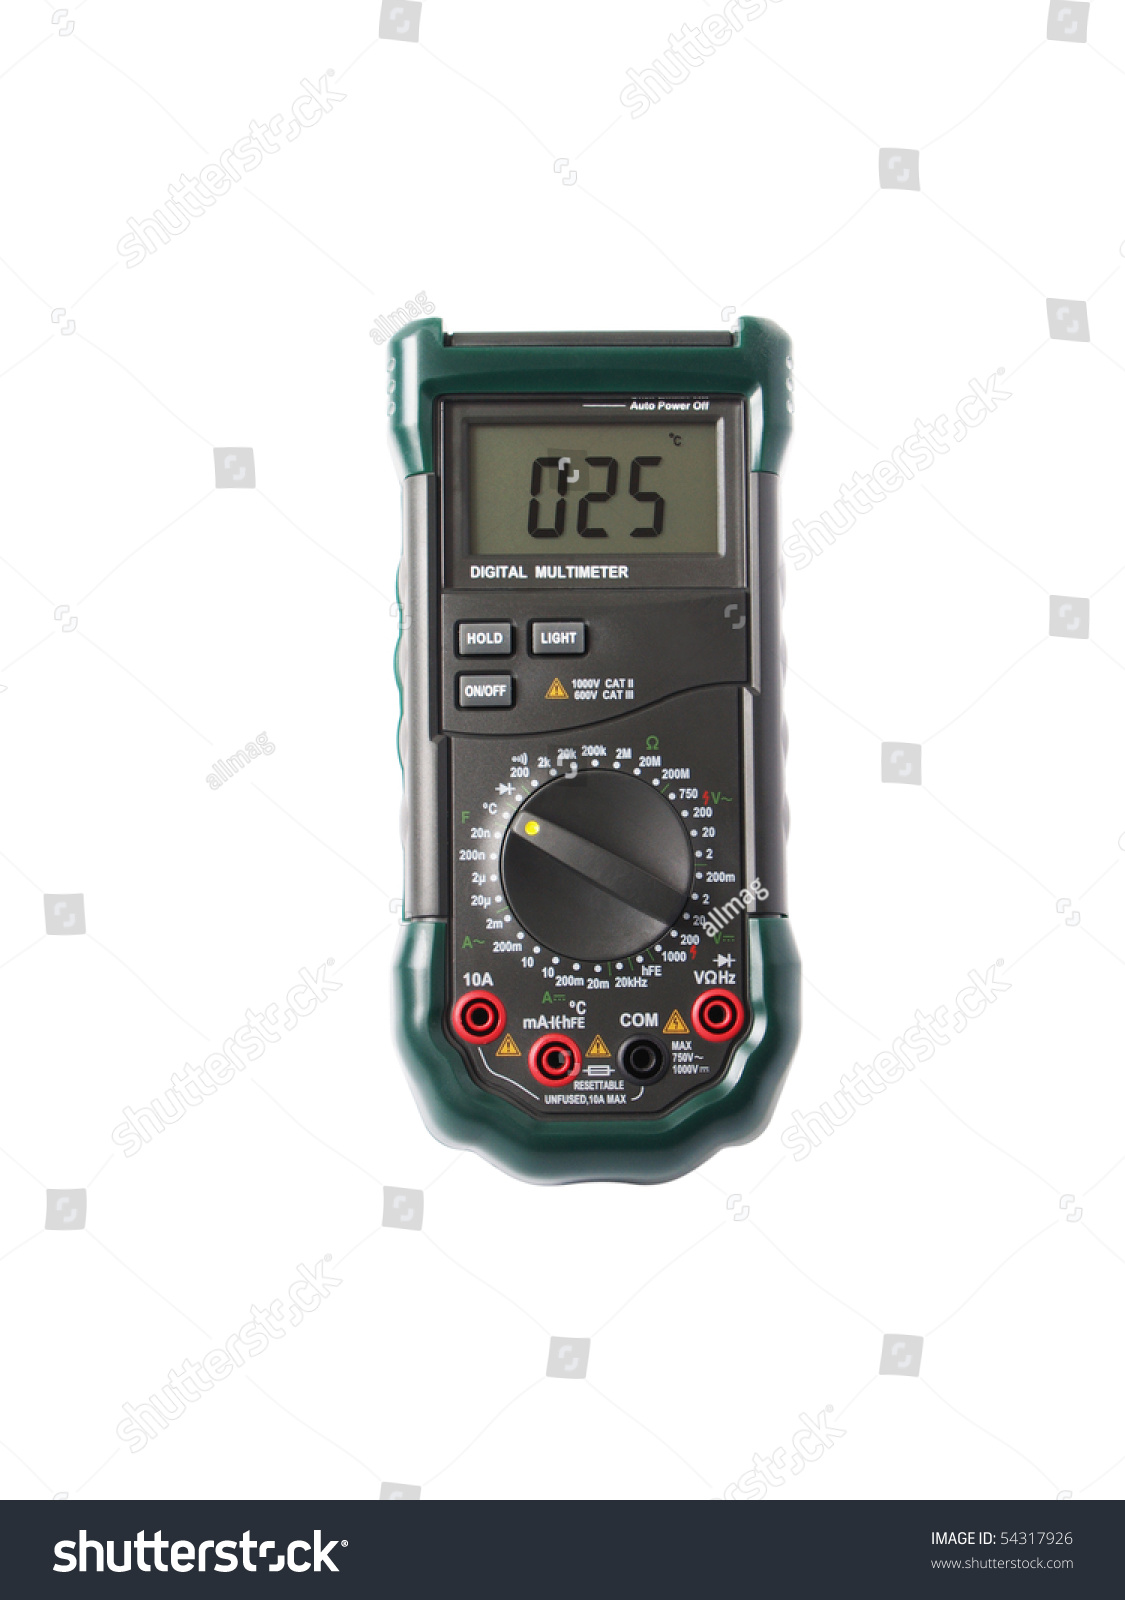 Electrical Measuring Devices : The multipurpose digital electric measuring device close